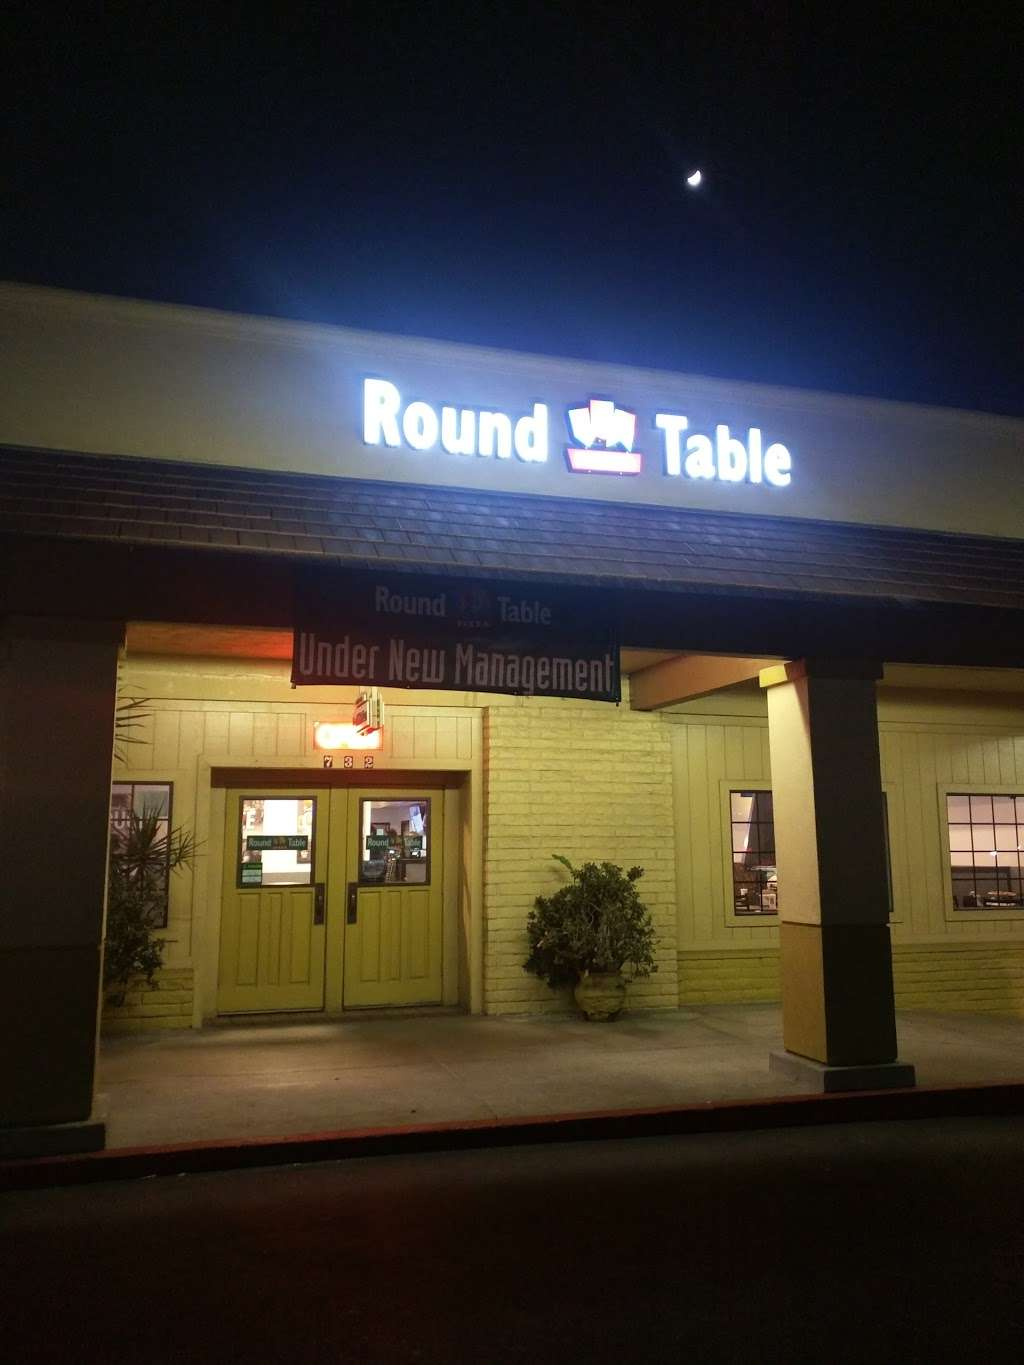 Round Table Pizza - meal delivery    Photo 5 of 6   Address: 732 N Brea Blvd, Brea, CA 92821, USA   Phone: (714) 671-2821